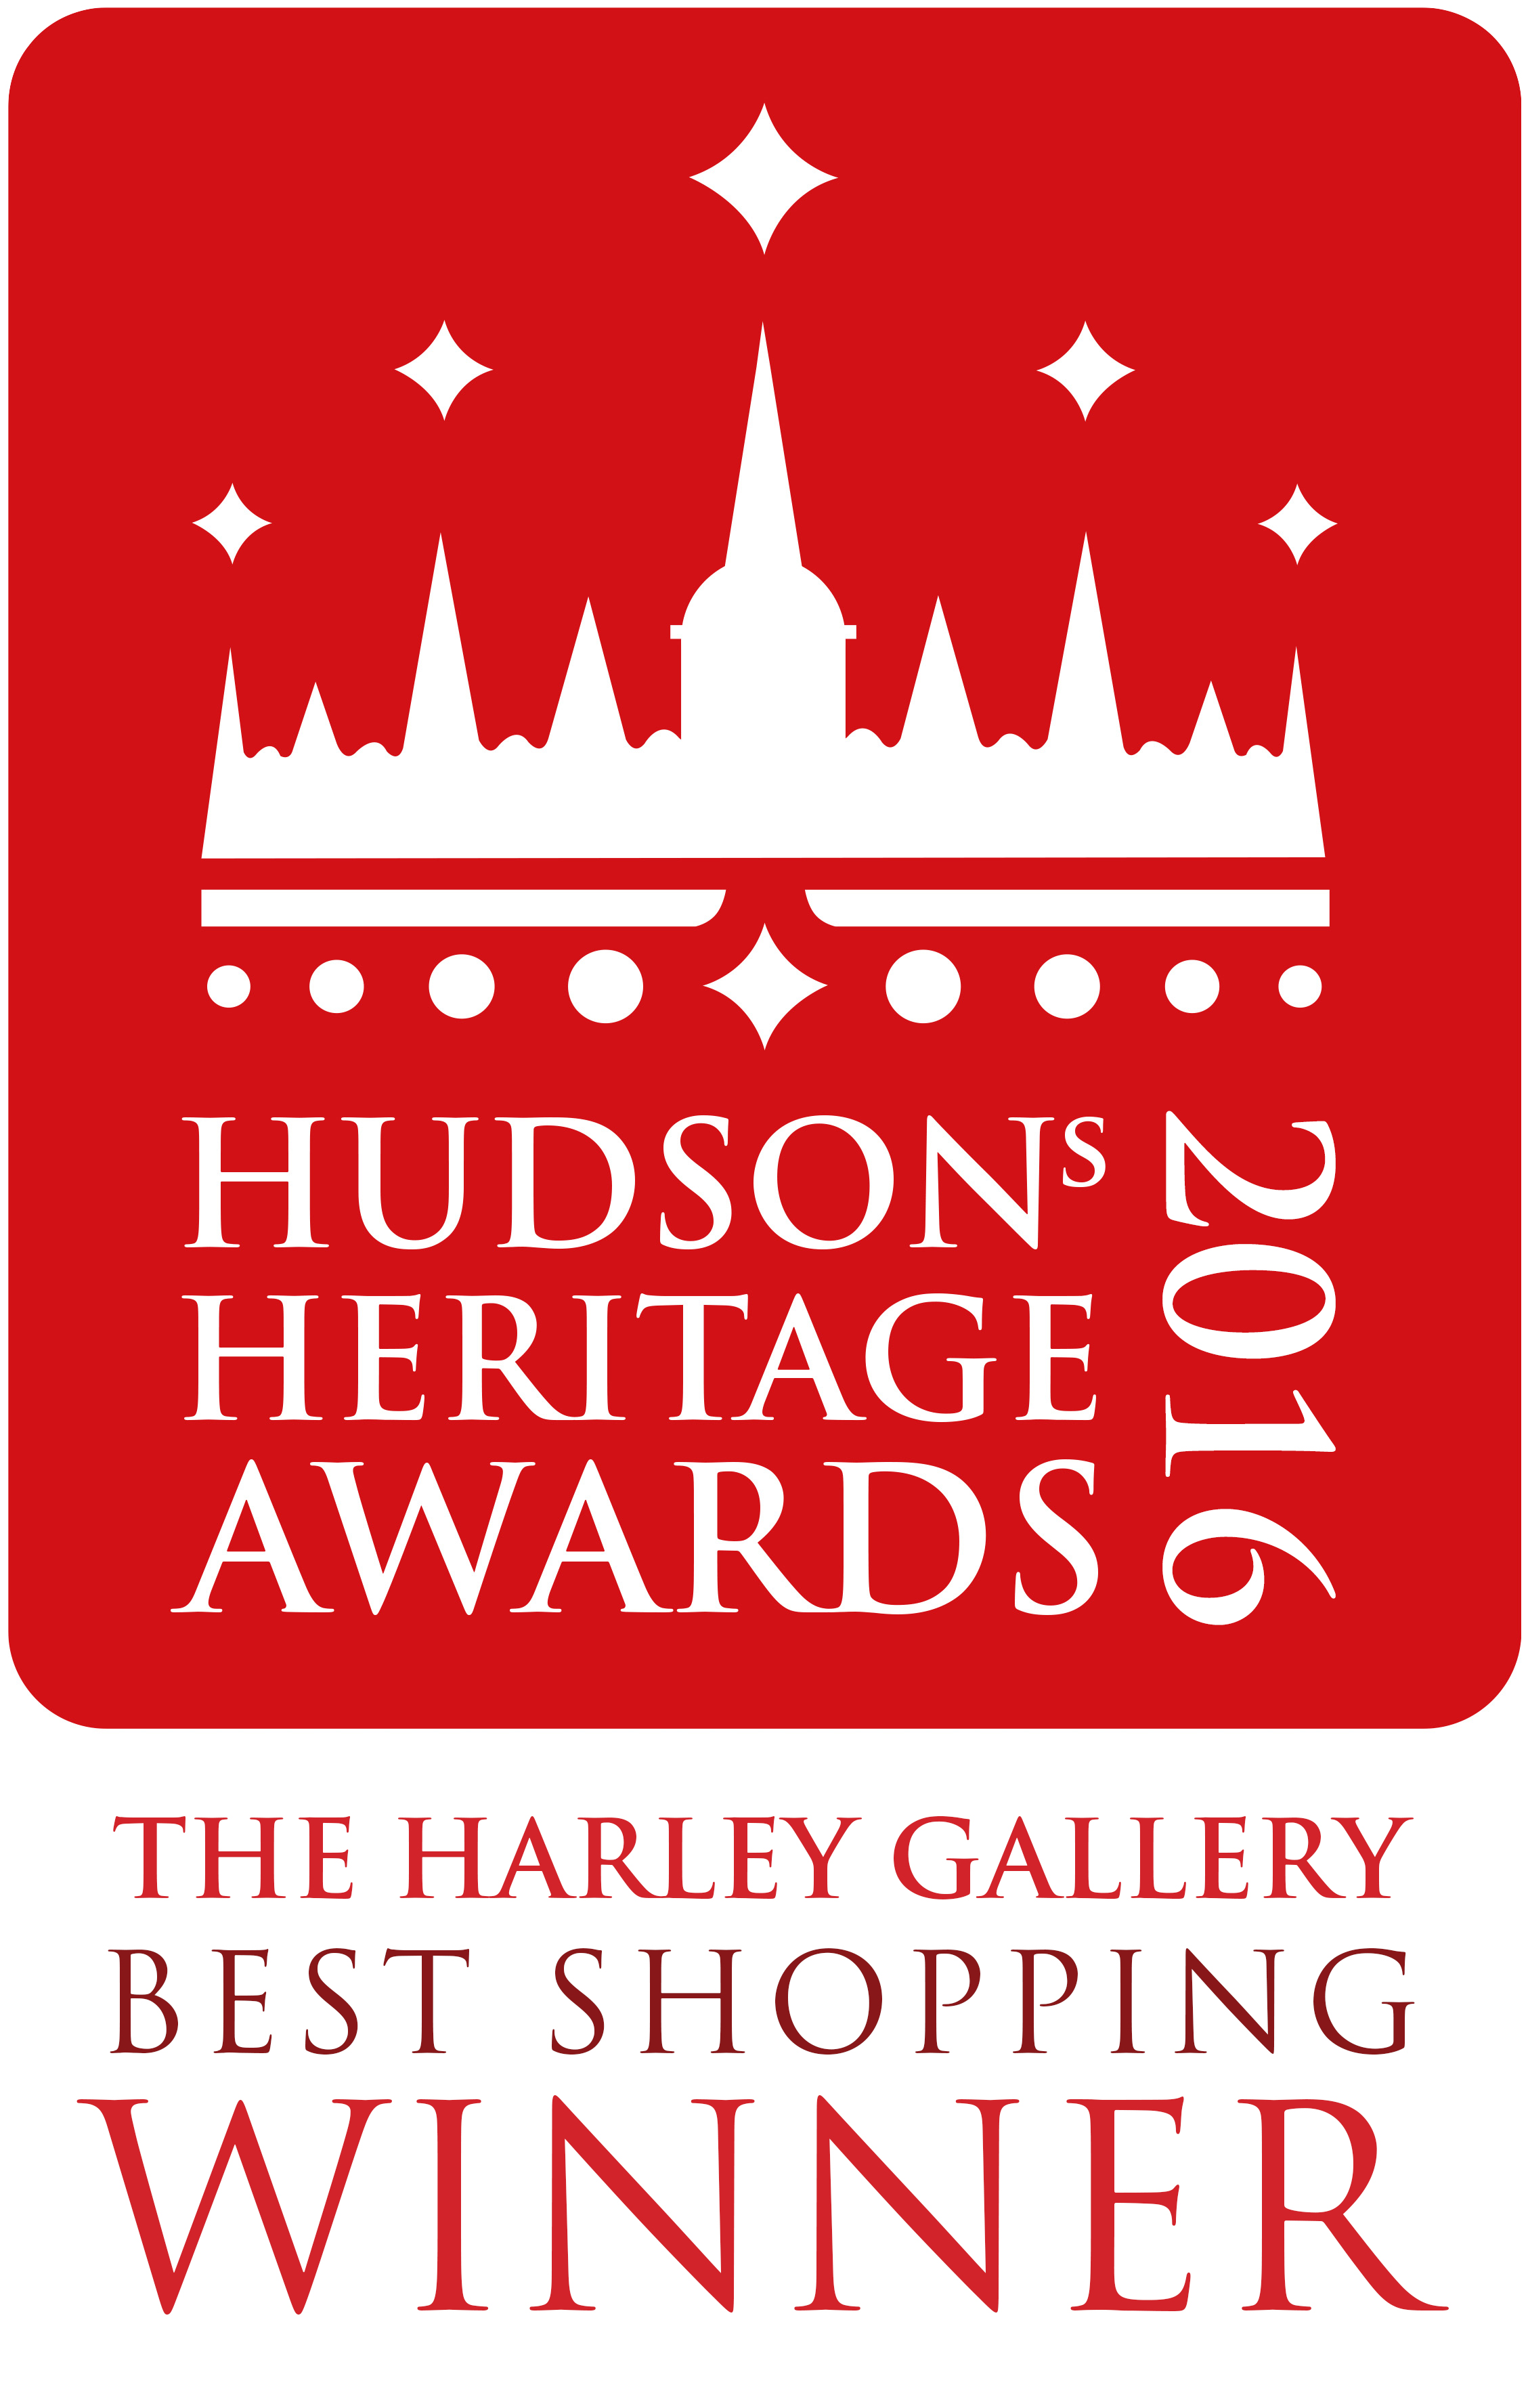 Hudson's Heritage Awards - Harley Gallery Best Shopping Winner Logo